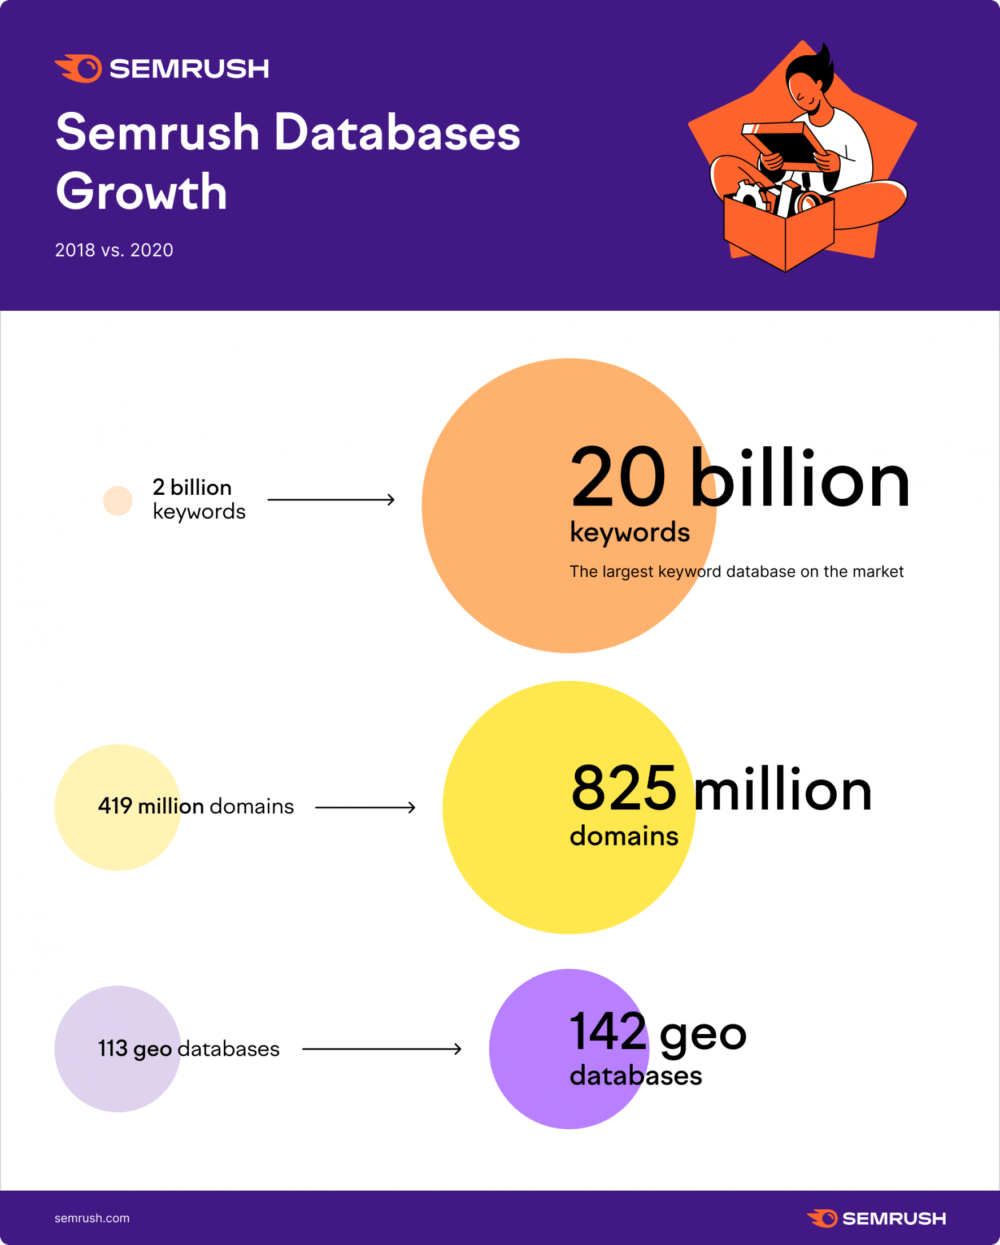 Semrush Databases Growth